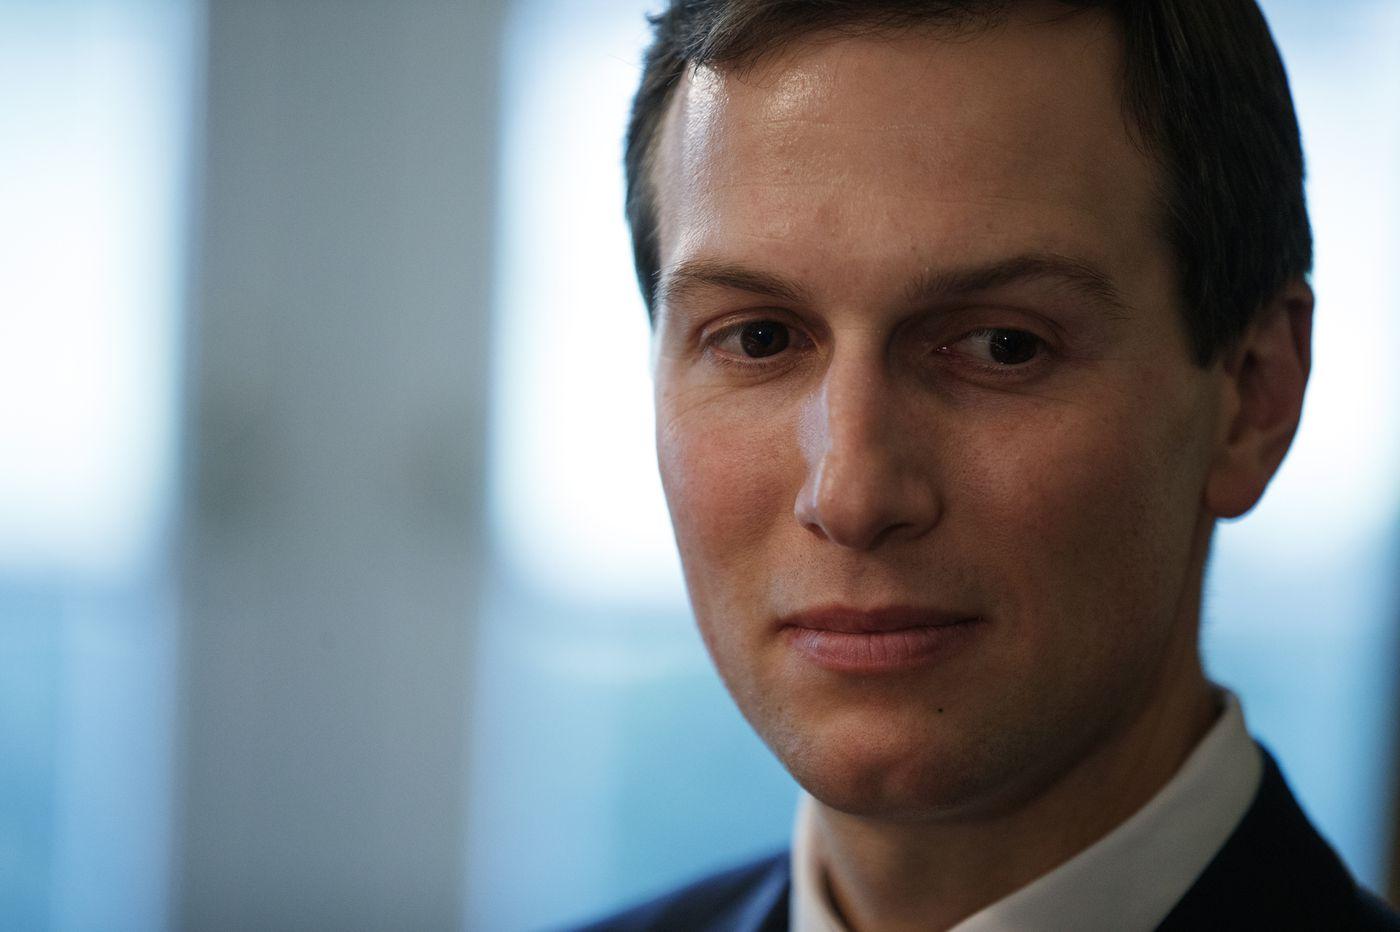 Democrats say Kushner used WhatsApp to contact foreign leaders